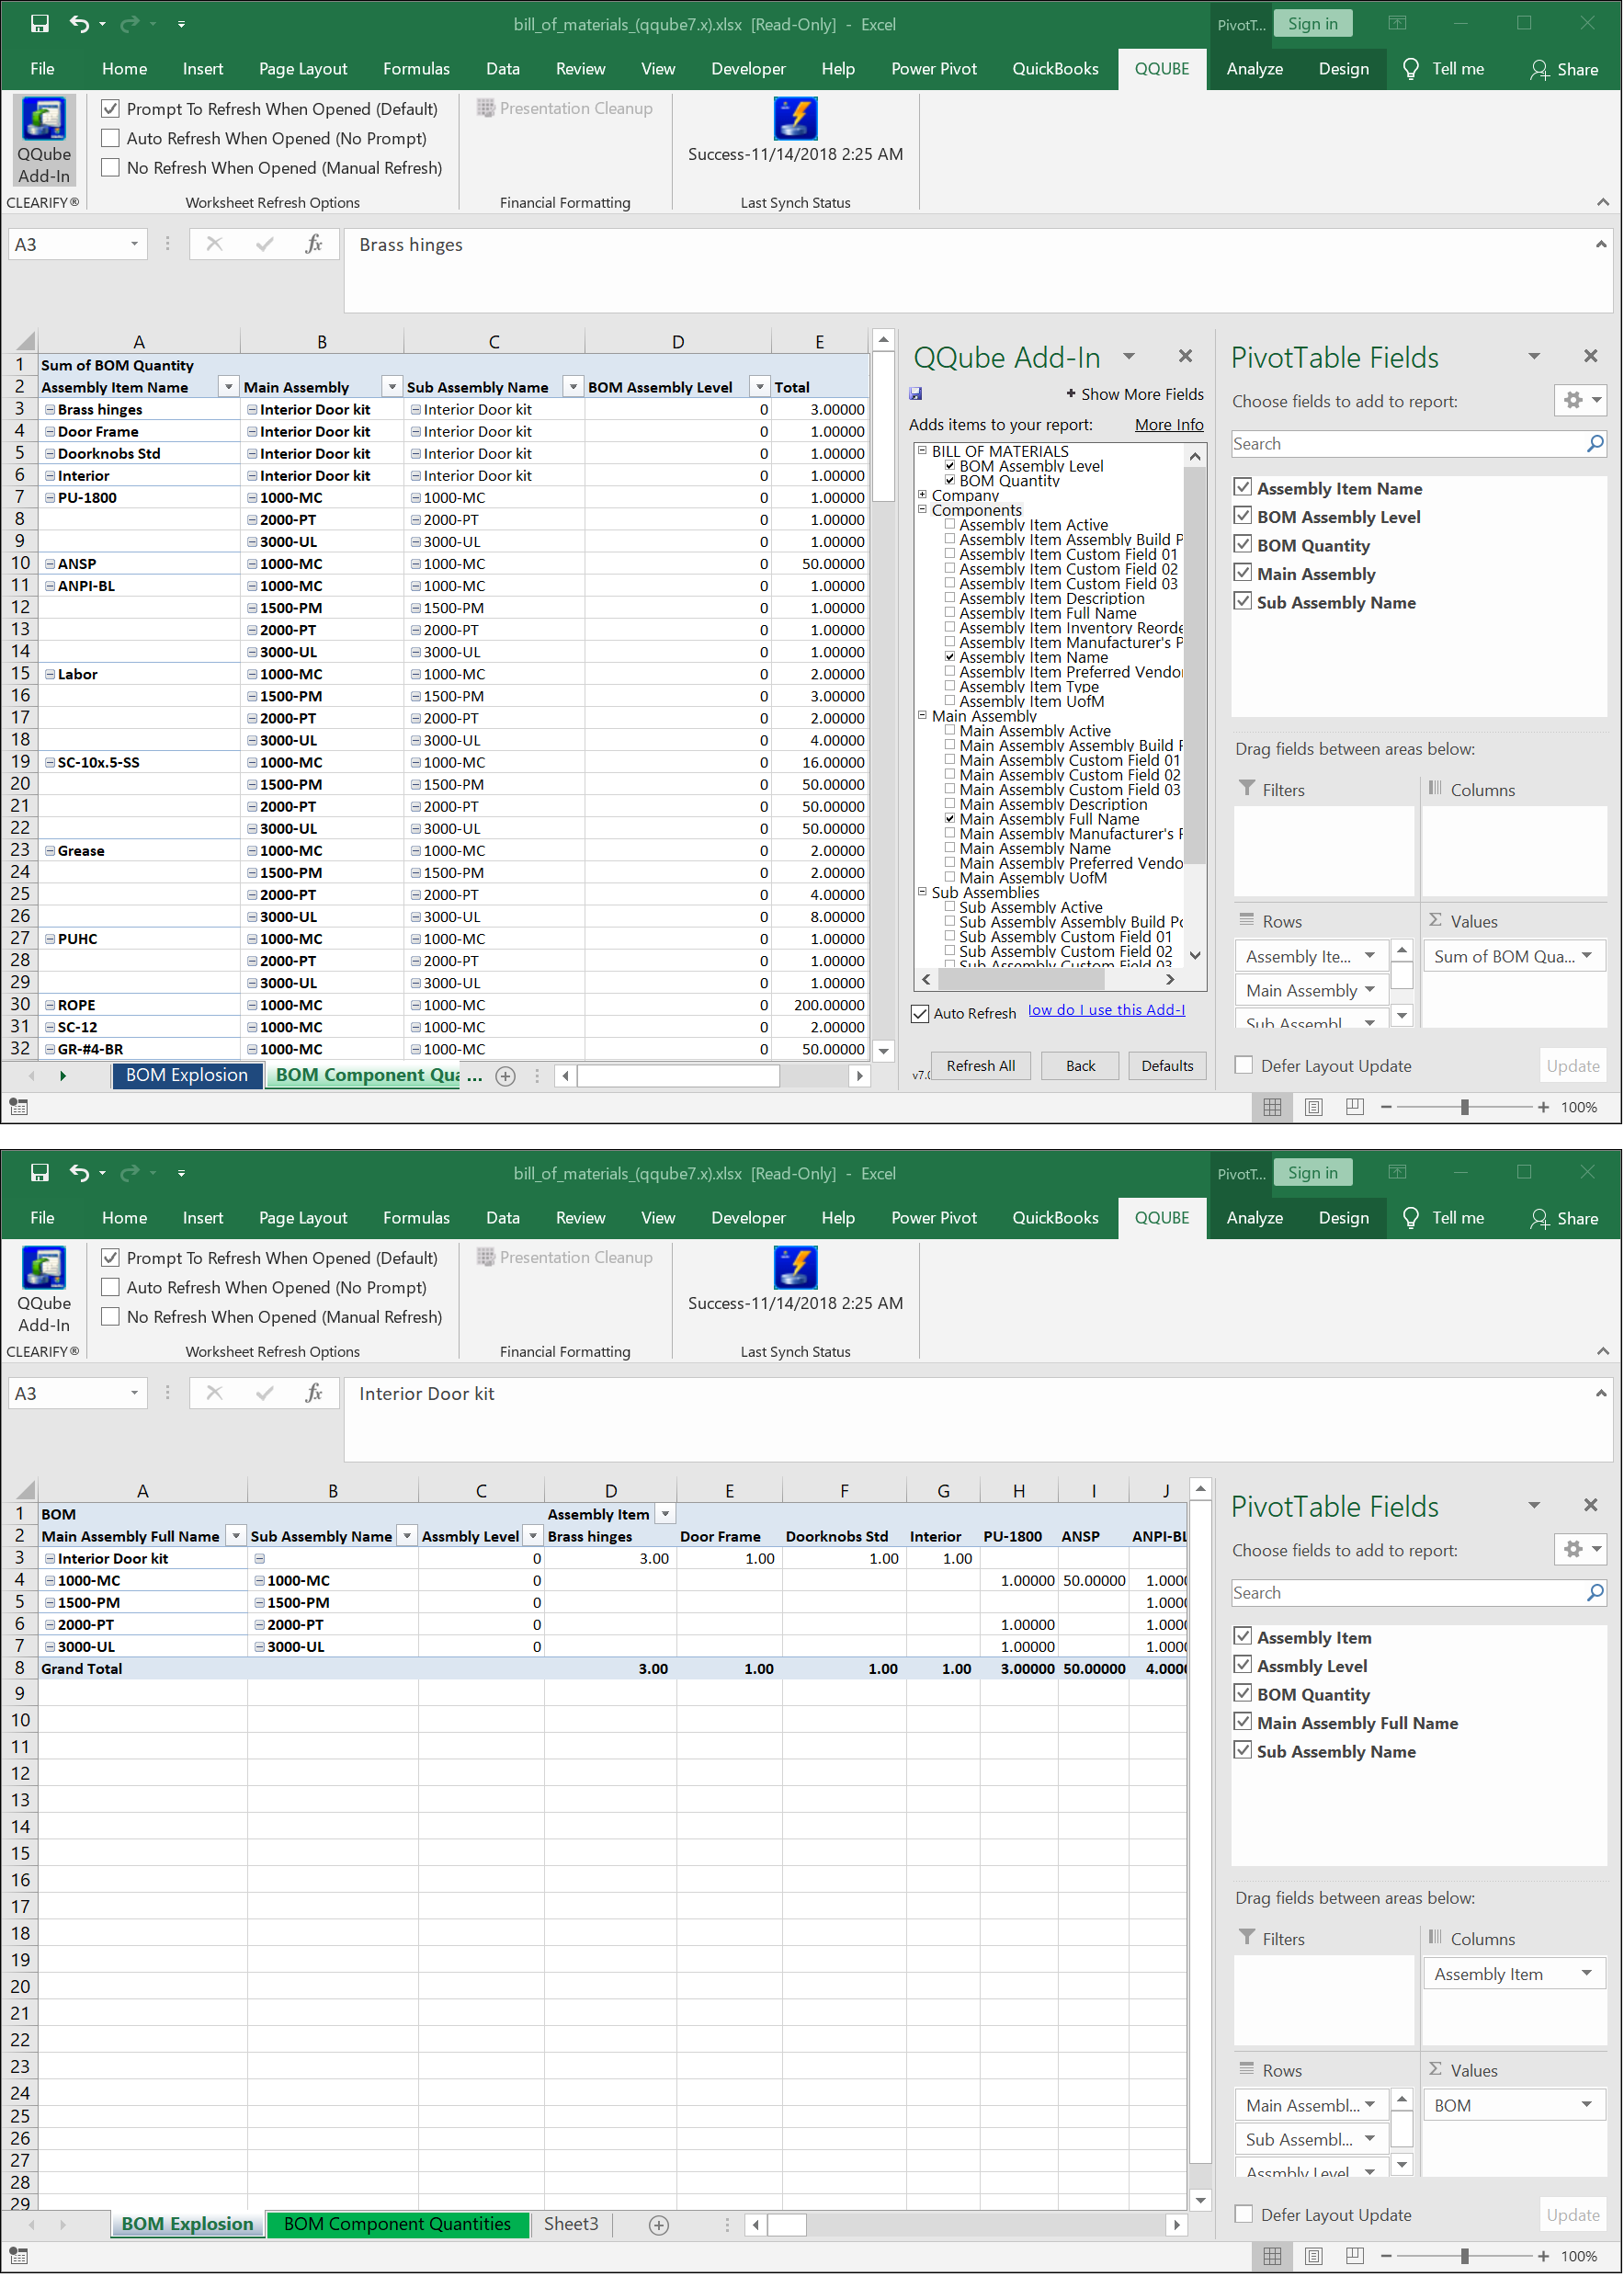 QuickBooks BOM Explosion using QQube and Excel